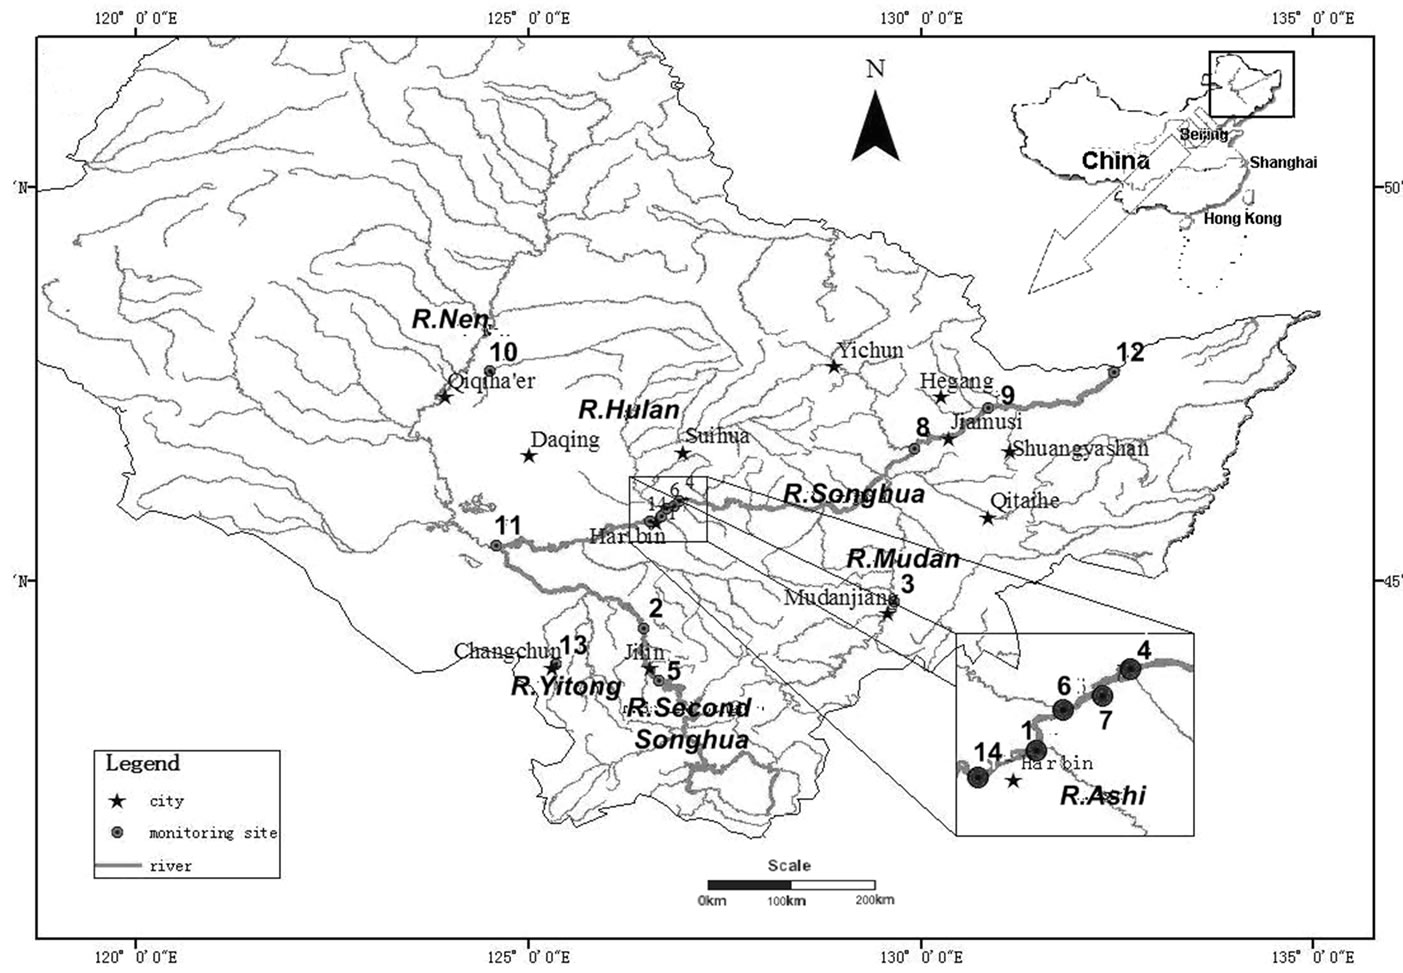 Water Quality Analysis of the Songhua River Basin Using